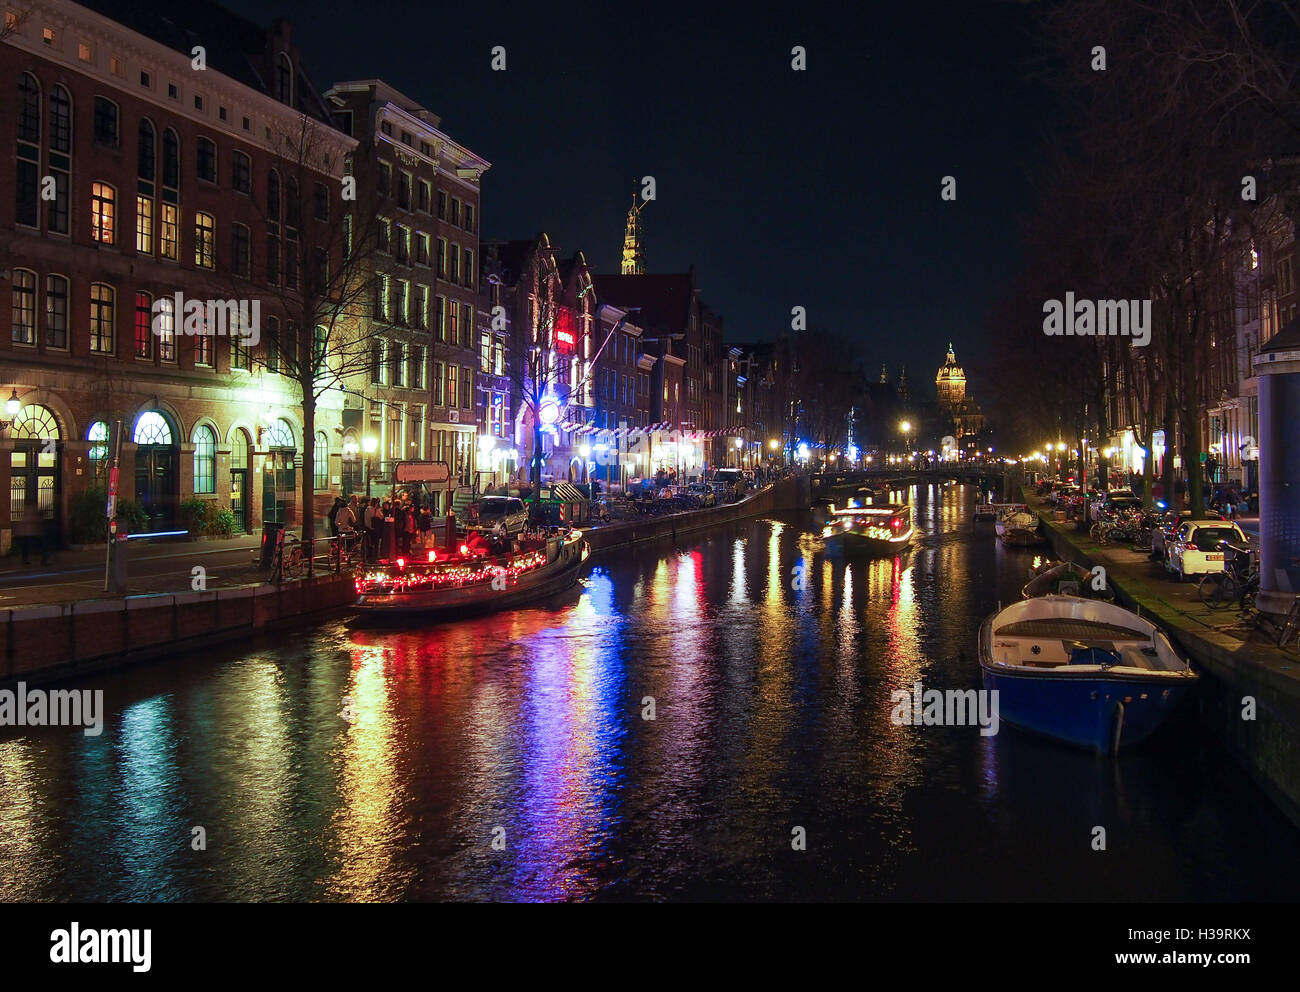 View of a canal in Amsterdam by night during winter - Stock Image